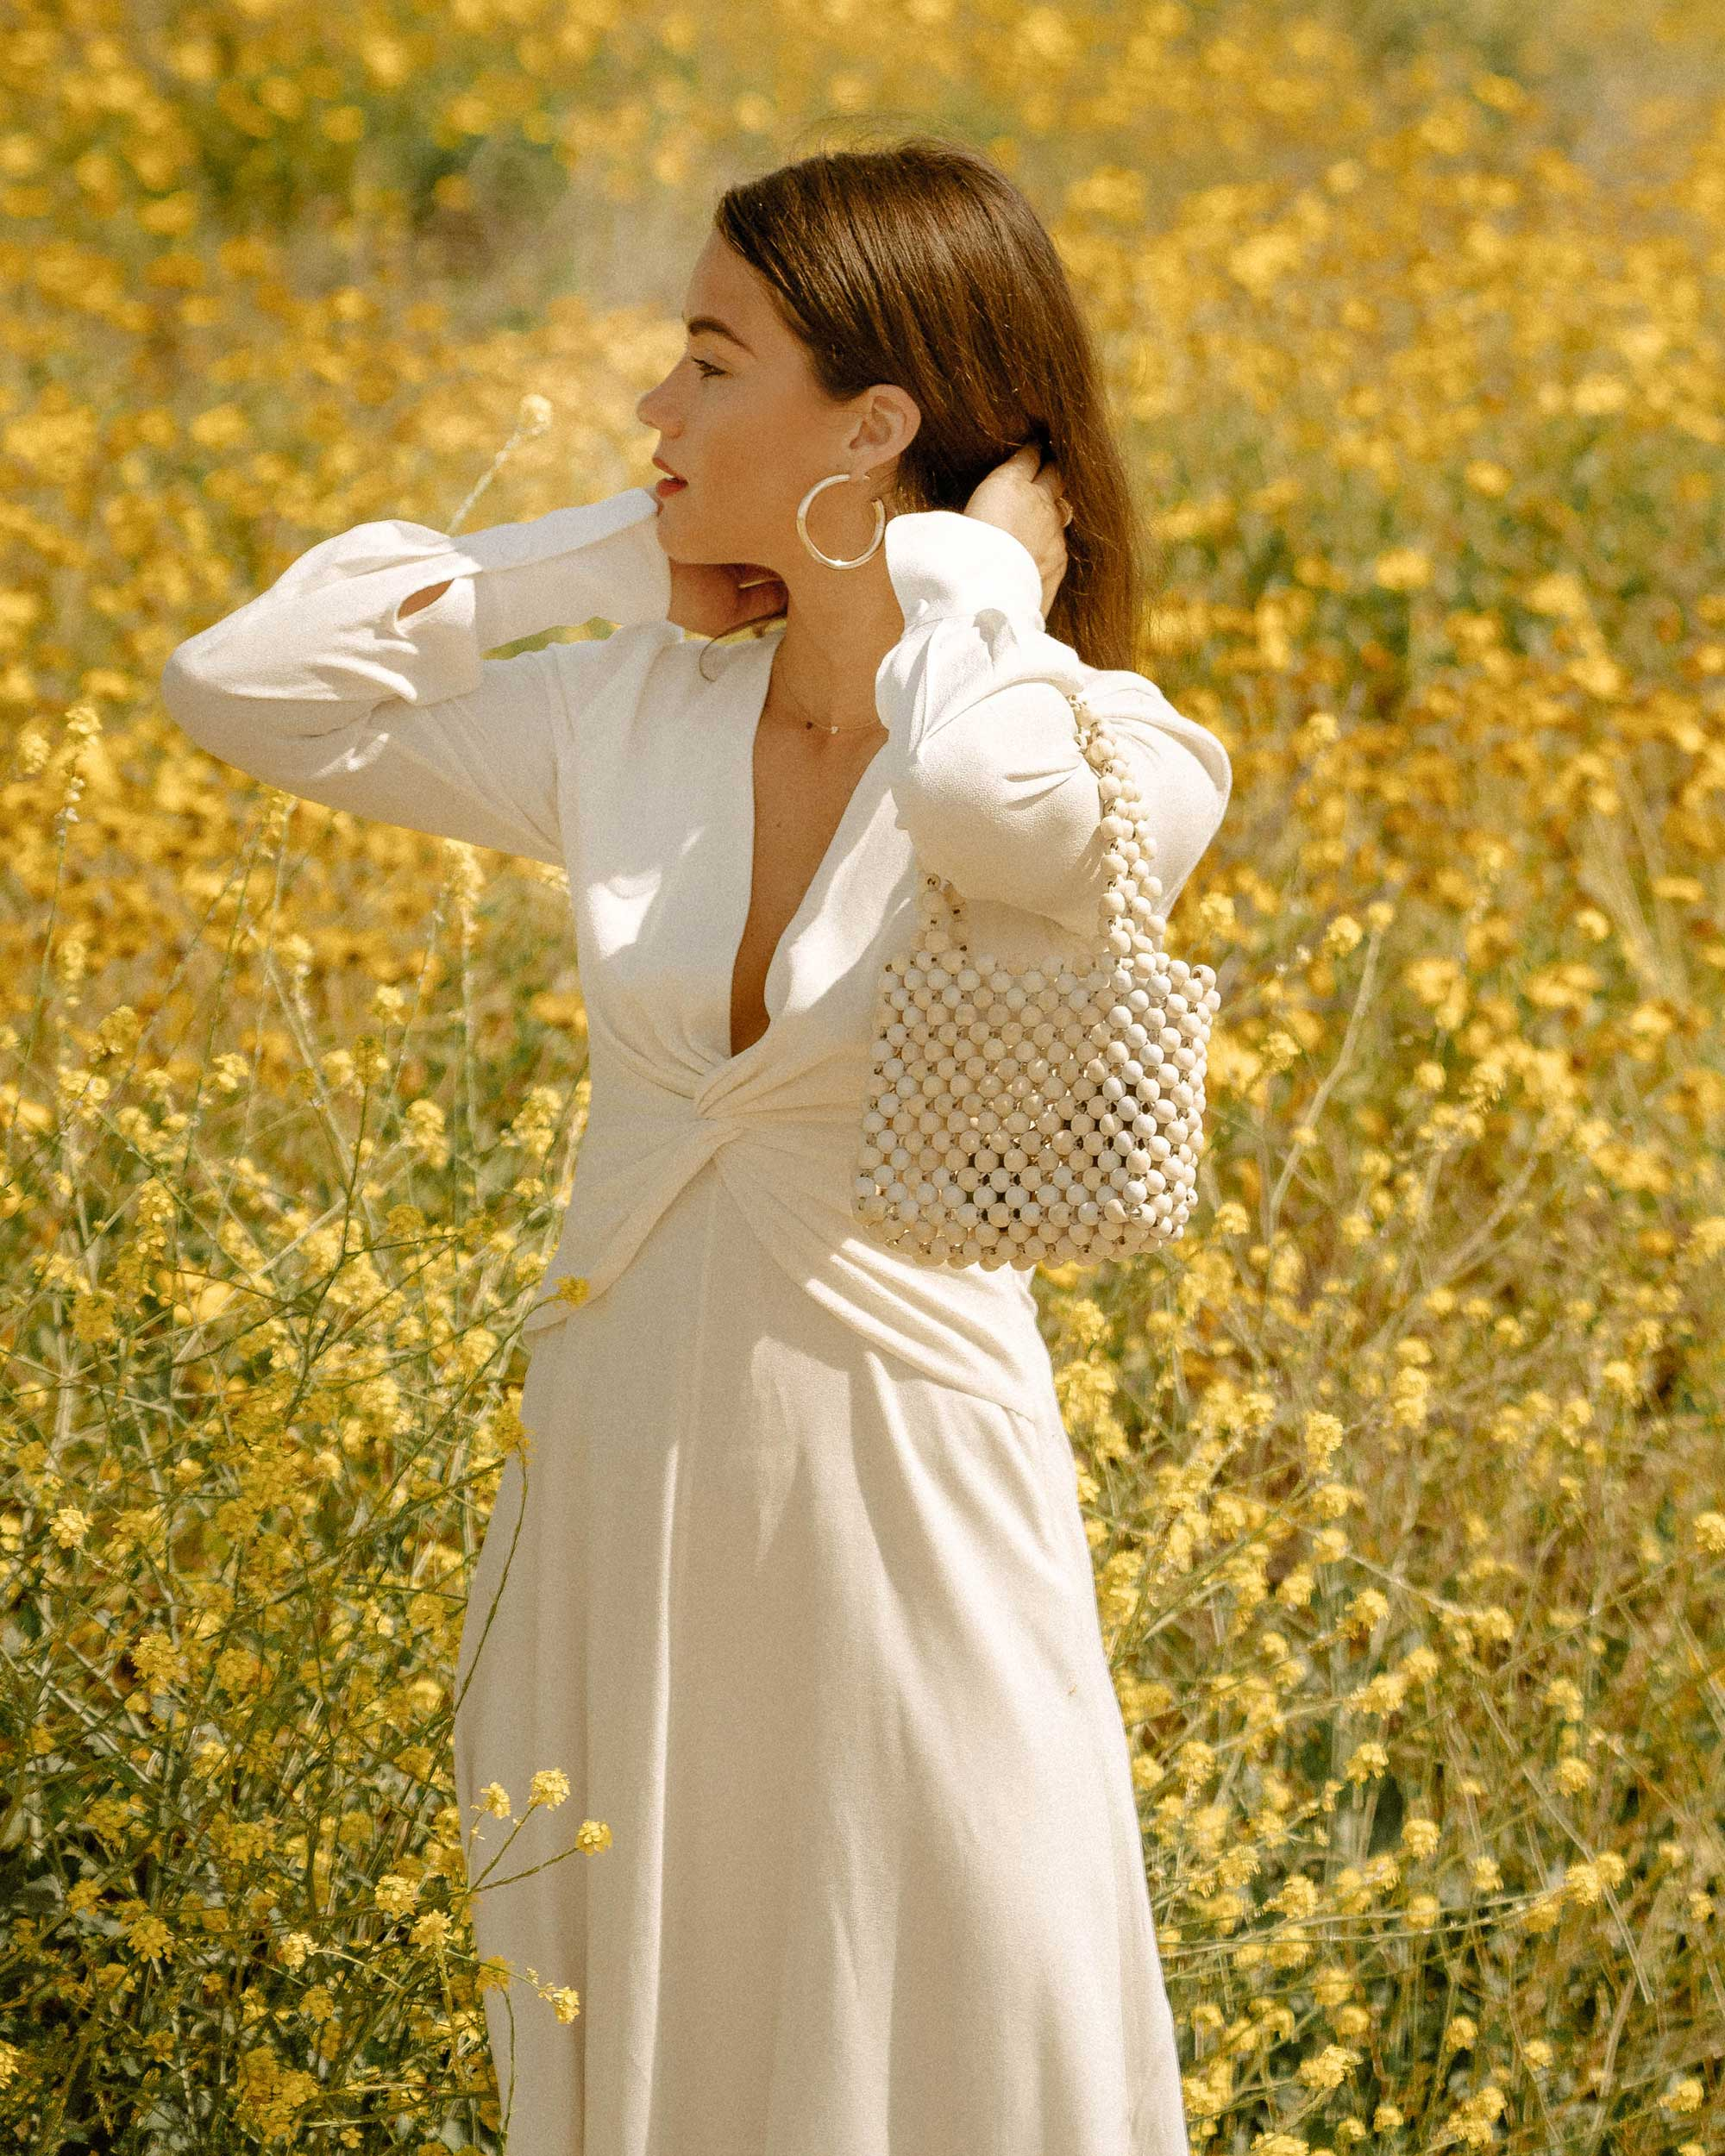 Sarah Butler of Sarah Styles Seattle wears Equipment Faun crepe midi dress in white with a flatteringly knotted front and plunging neckline for the perfect spring outfit   @sarahchristine -8.jpg